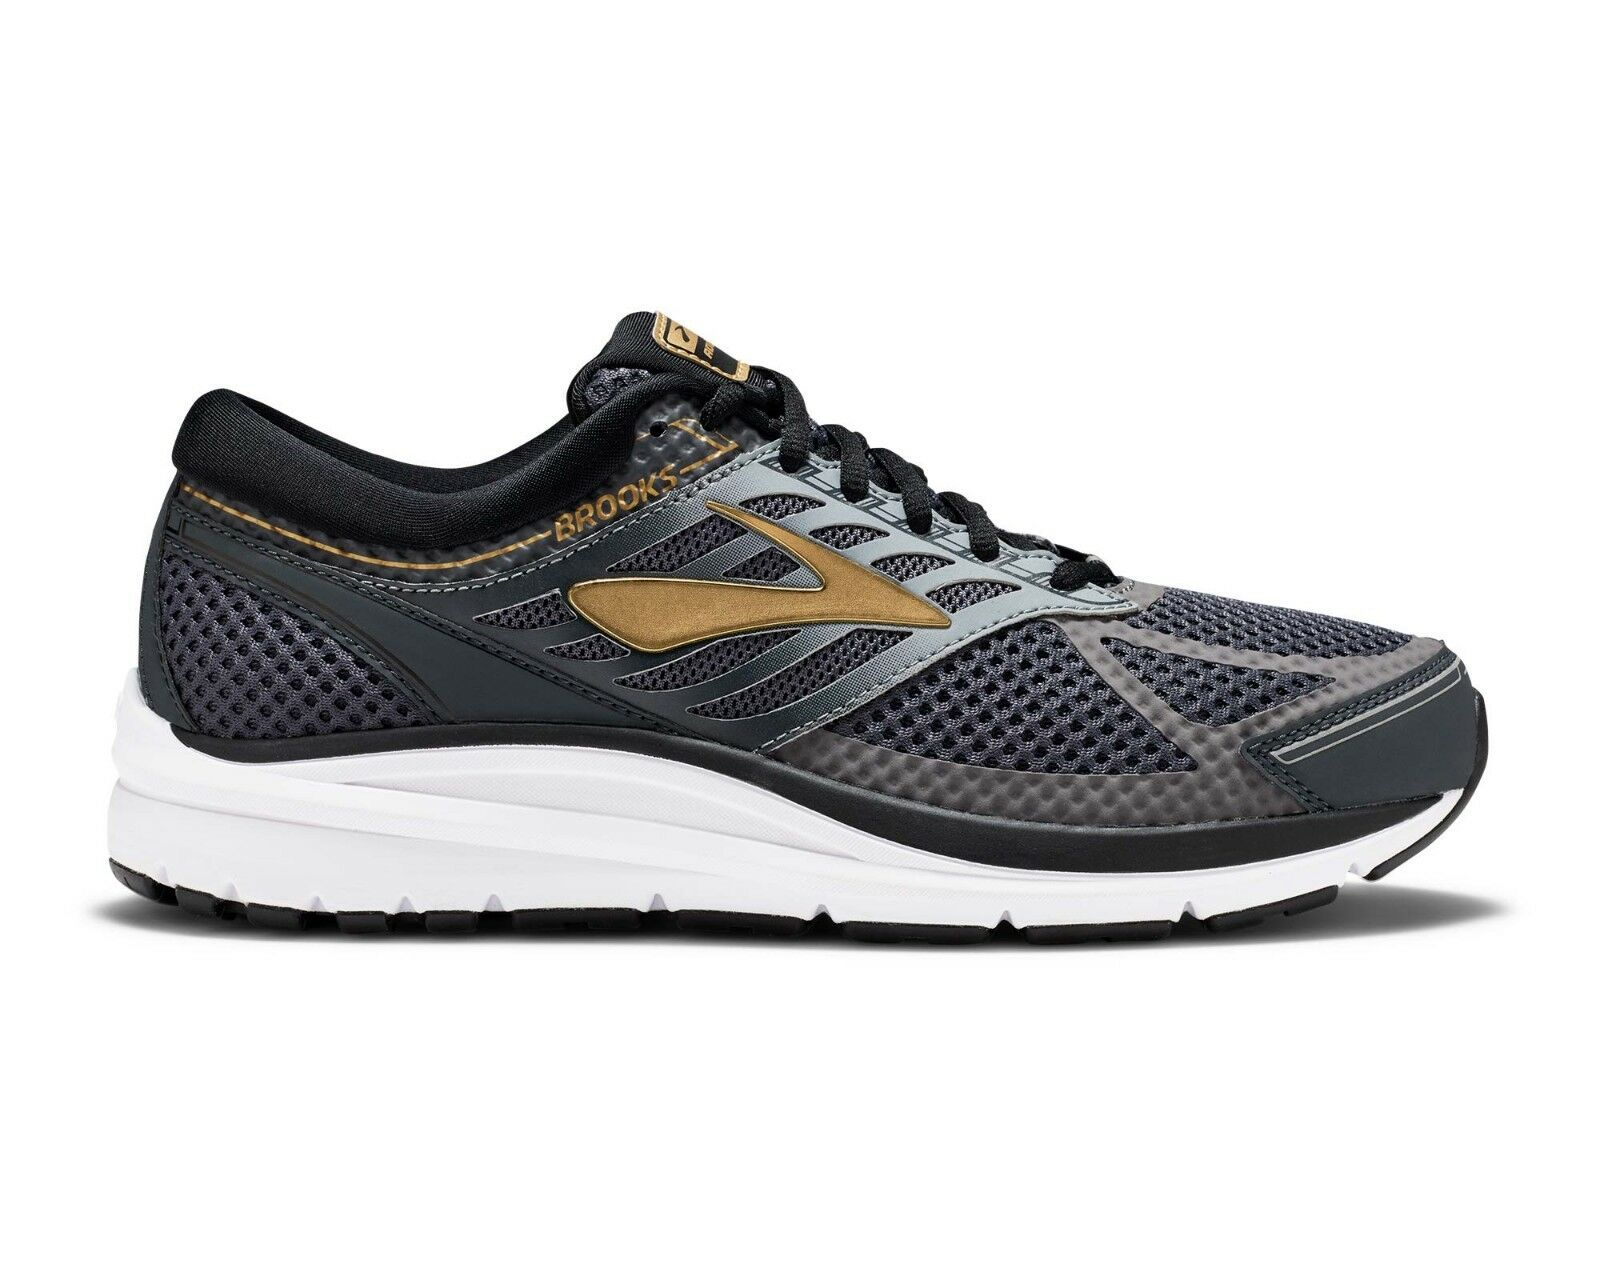 Brooks Addiction 13 Mens Running Shoes (2E) (091) + FREE AUS DELIVERY